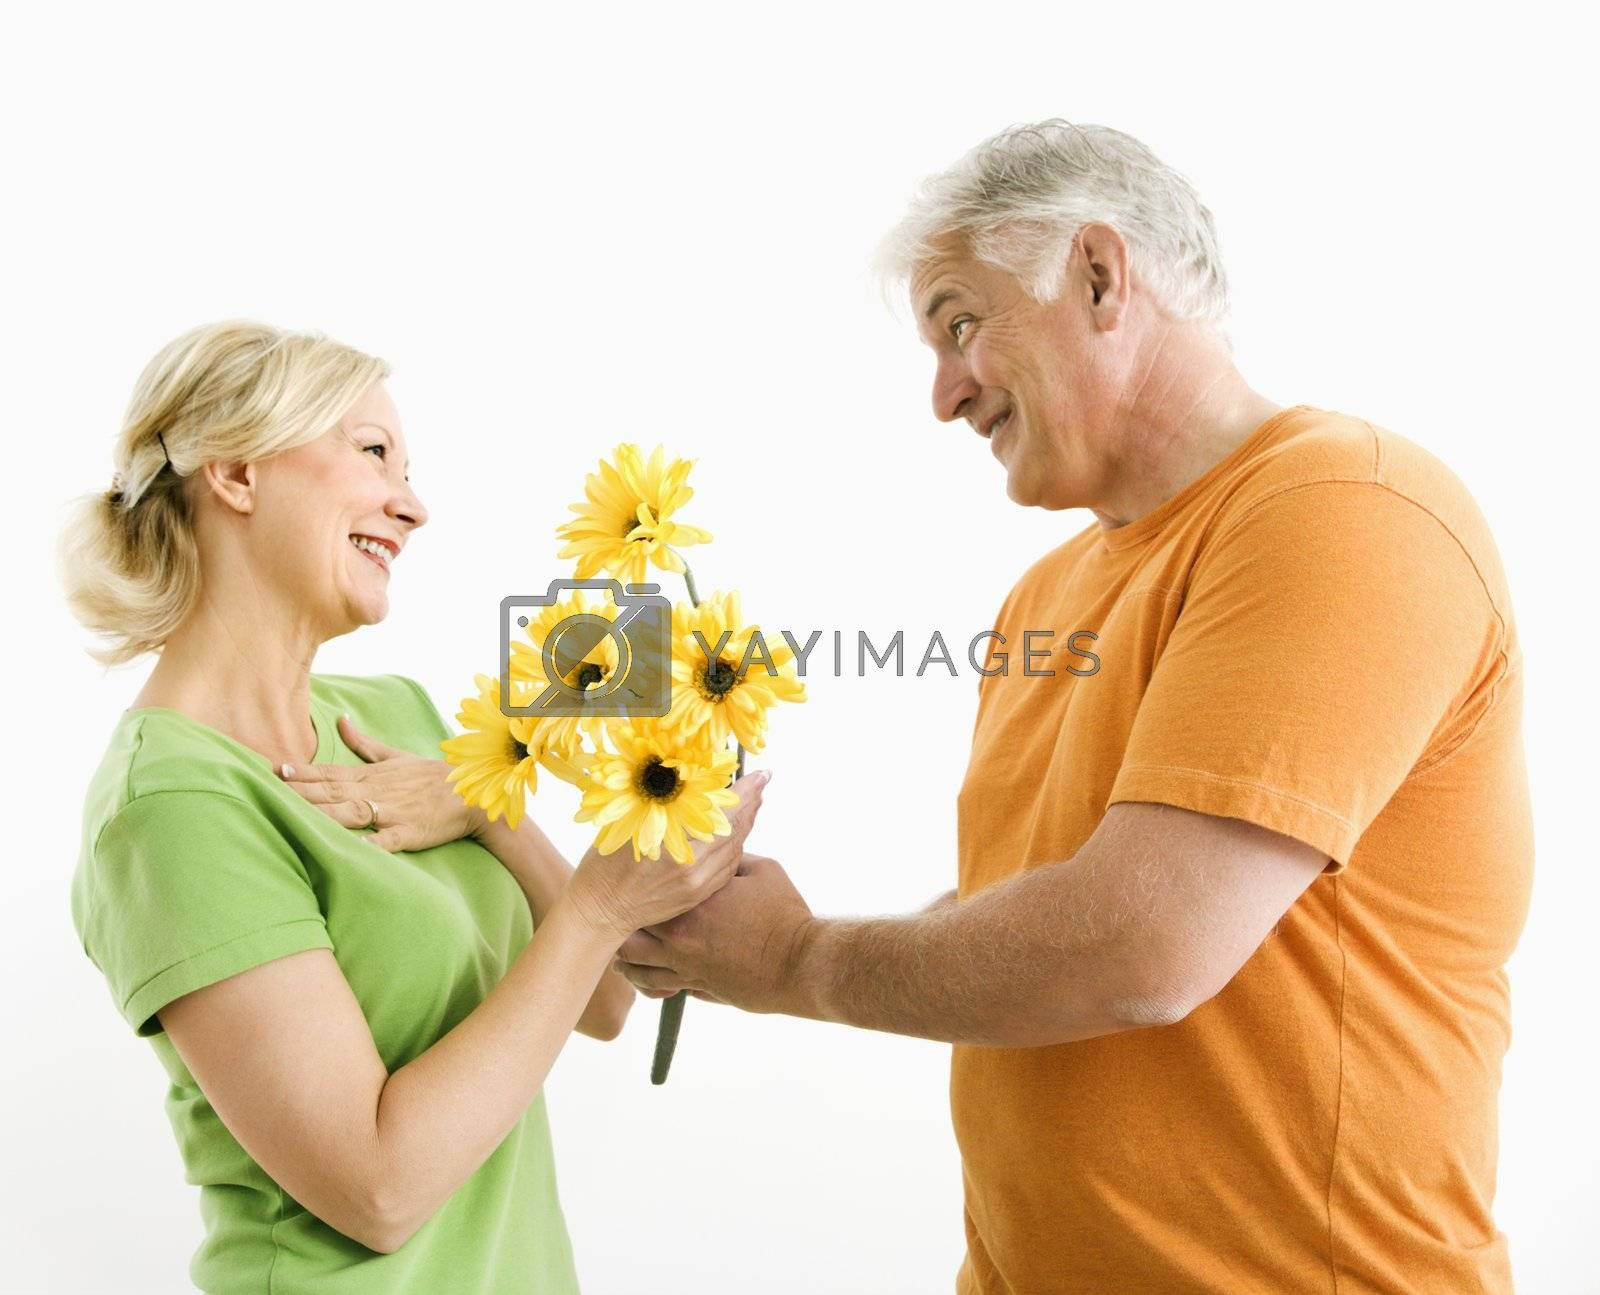 Middle-aged man giving woman bouquet of yellow flowers.